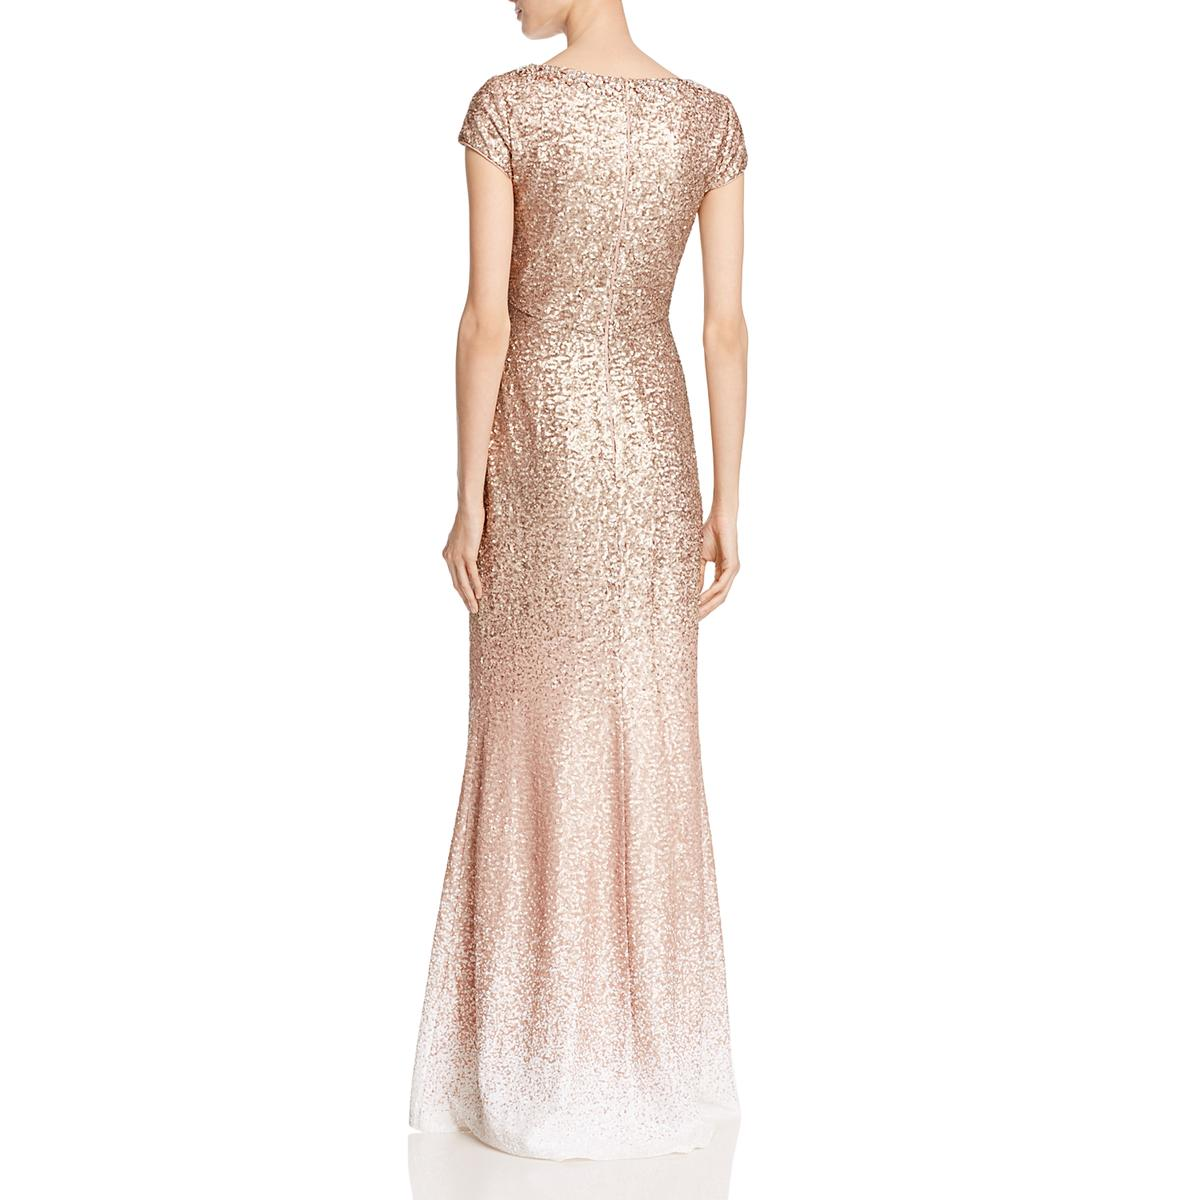 07b3f84128 Carmen Marc Valvo Womens Pink Sequined Ombre Evening Dress Gown 4 ...